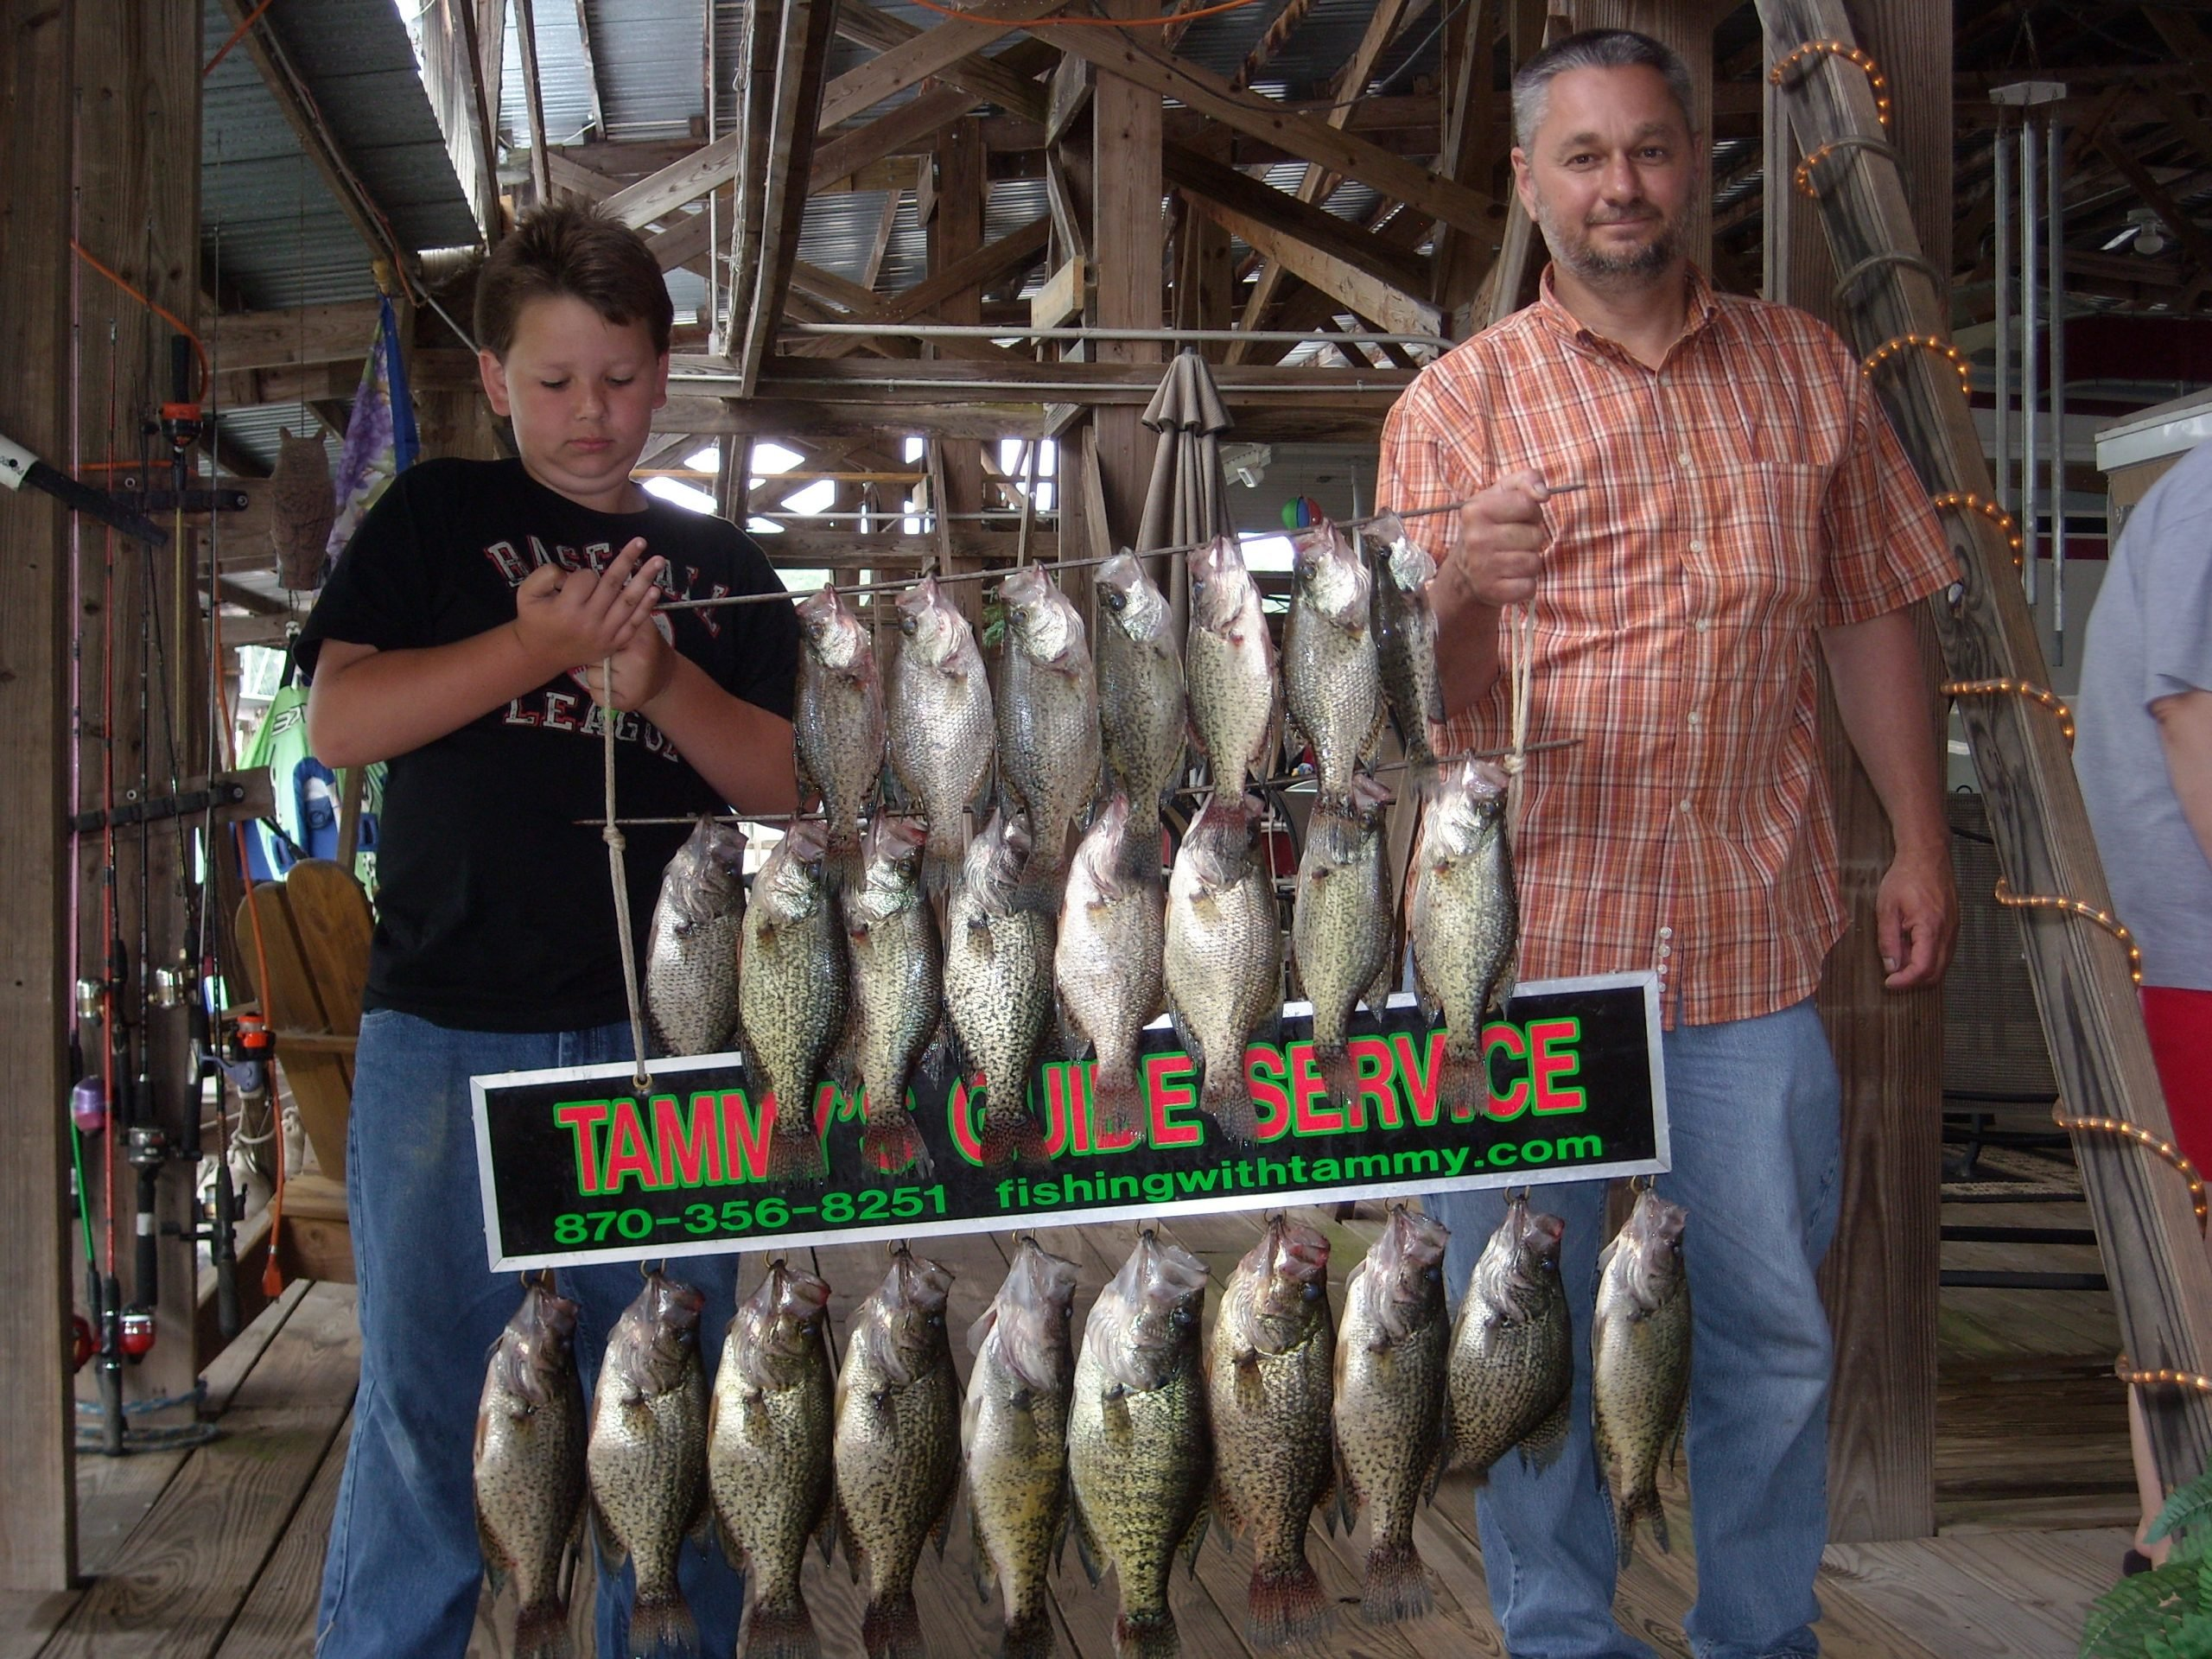 fishing with tammys guide service